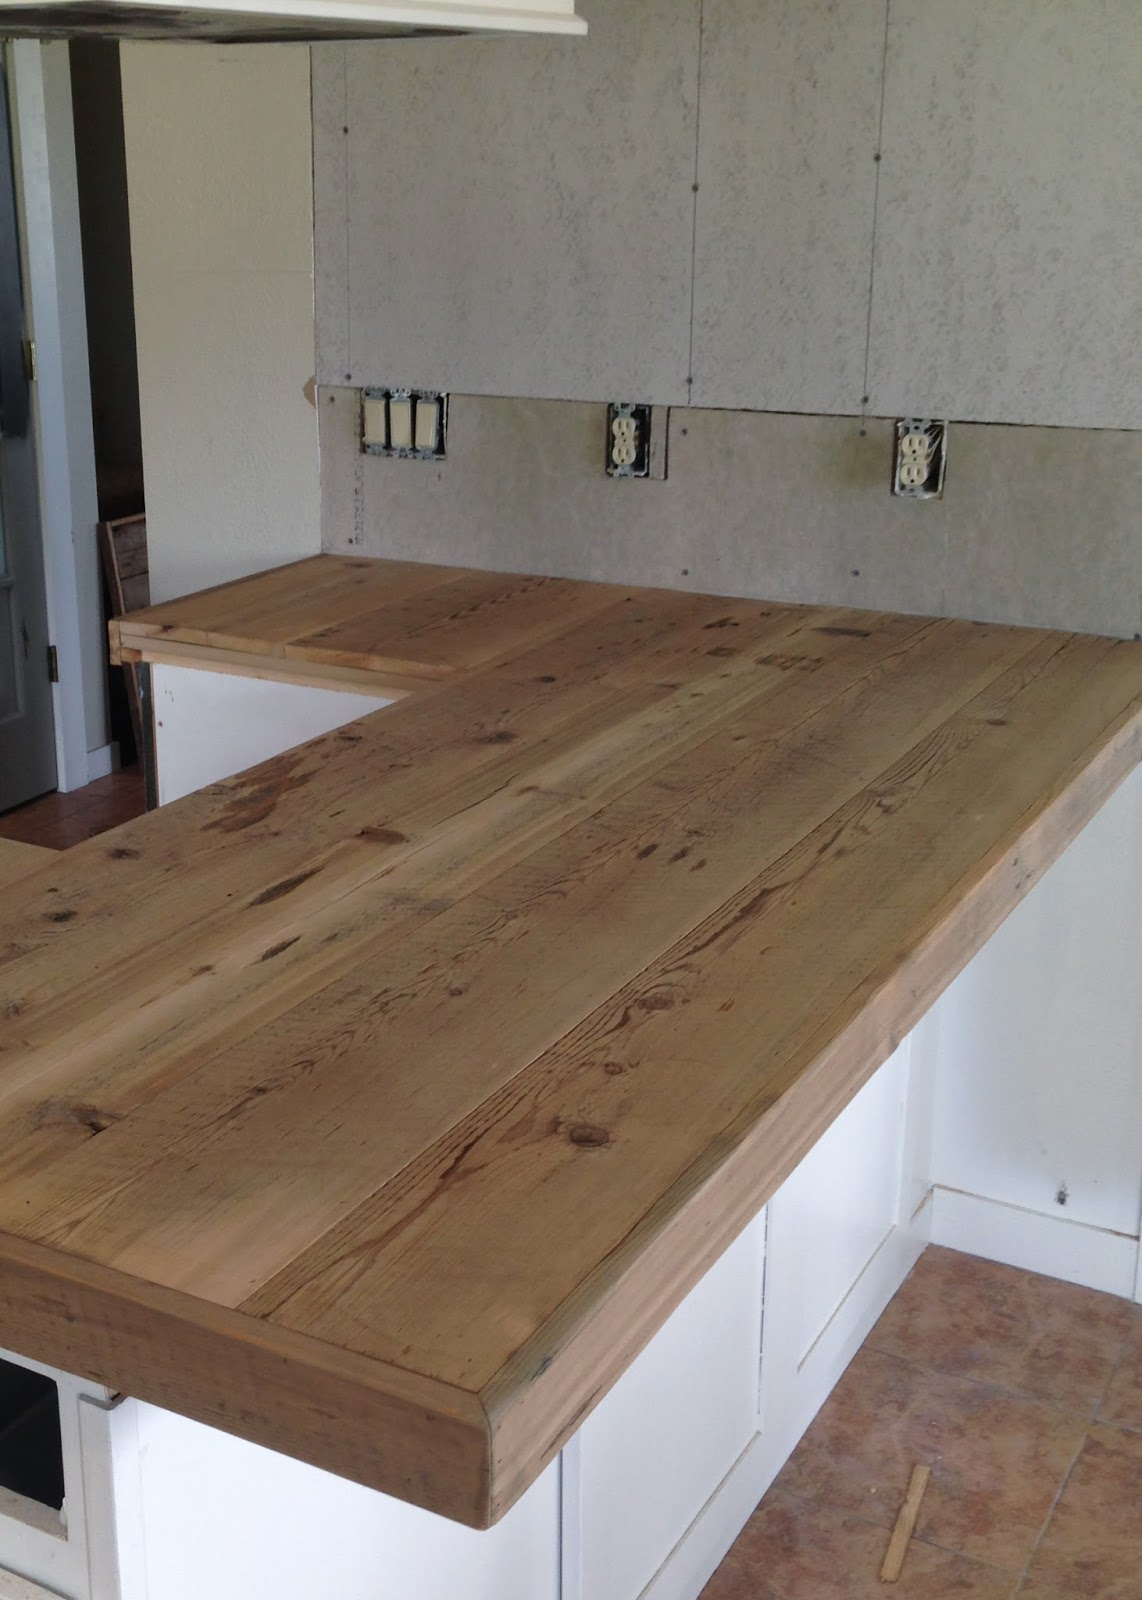 Uncategorized Diy Wood Kitchen Countertops diy reclaimed wood countertop averie lane adding trim boards along edge